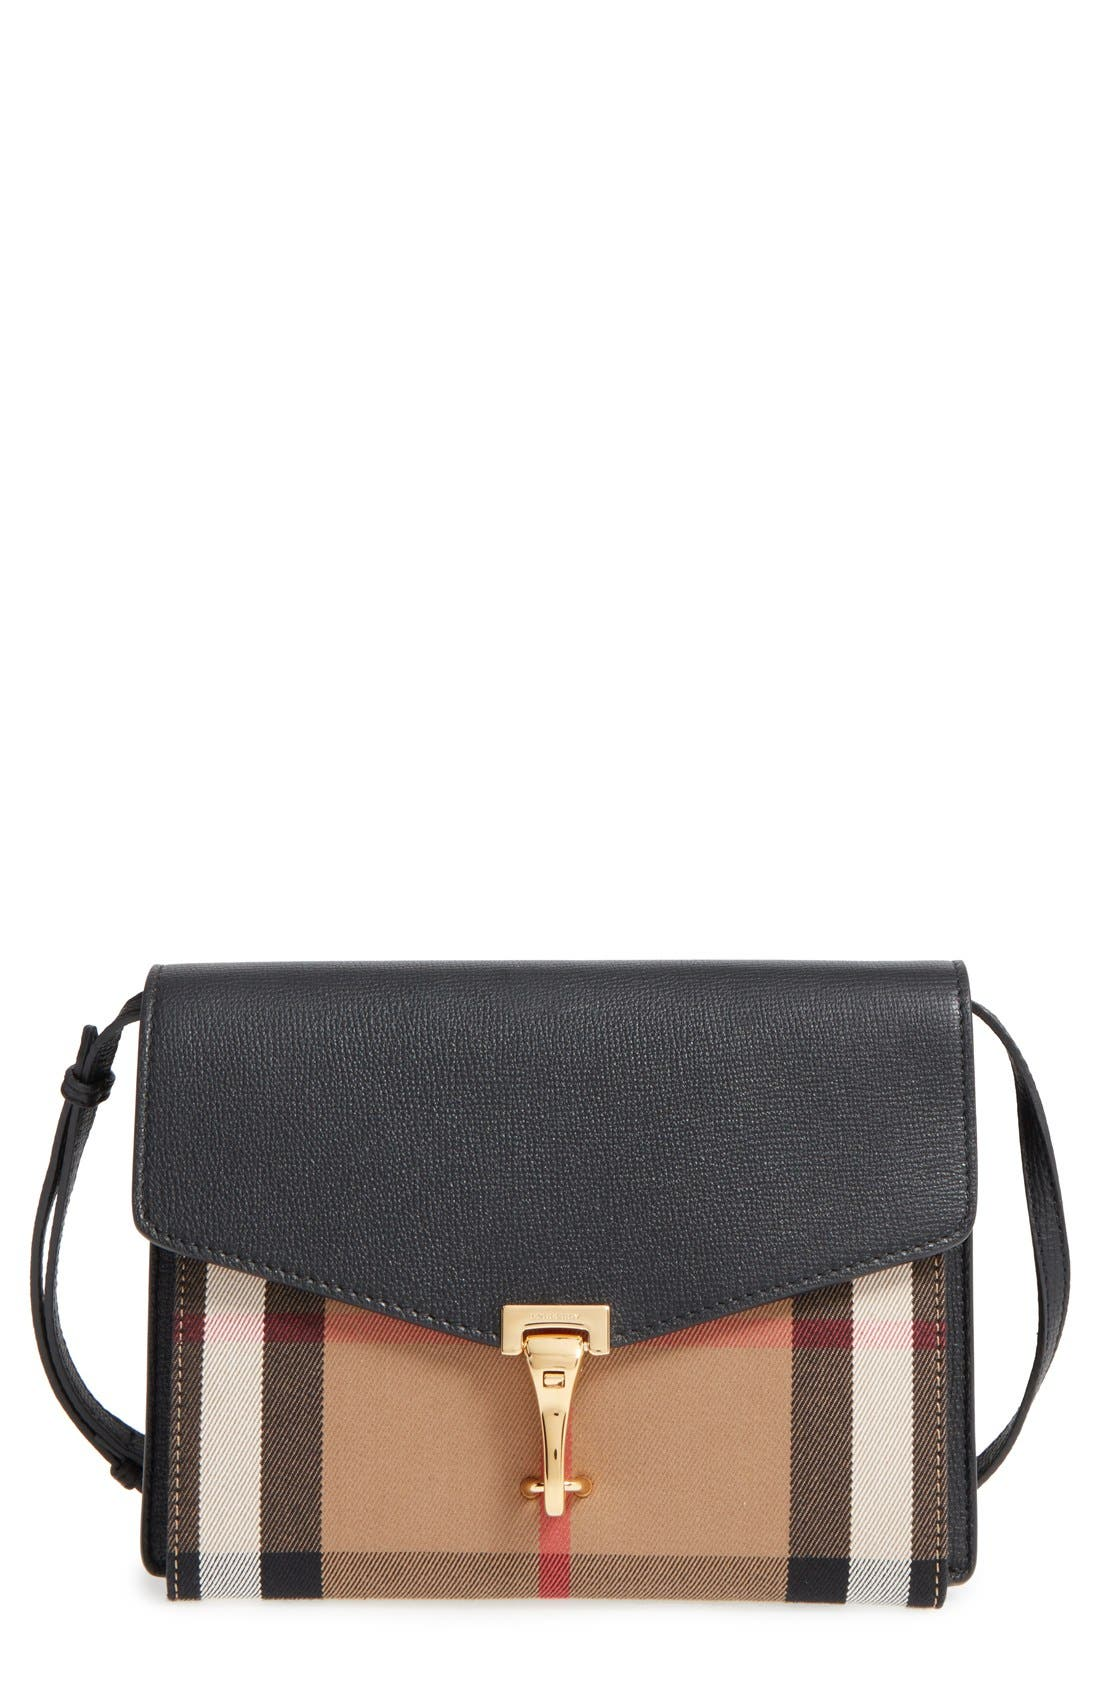 'Small Macken' House Check Crossbody Bag,                         Main,                         color, Black